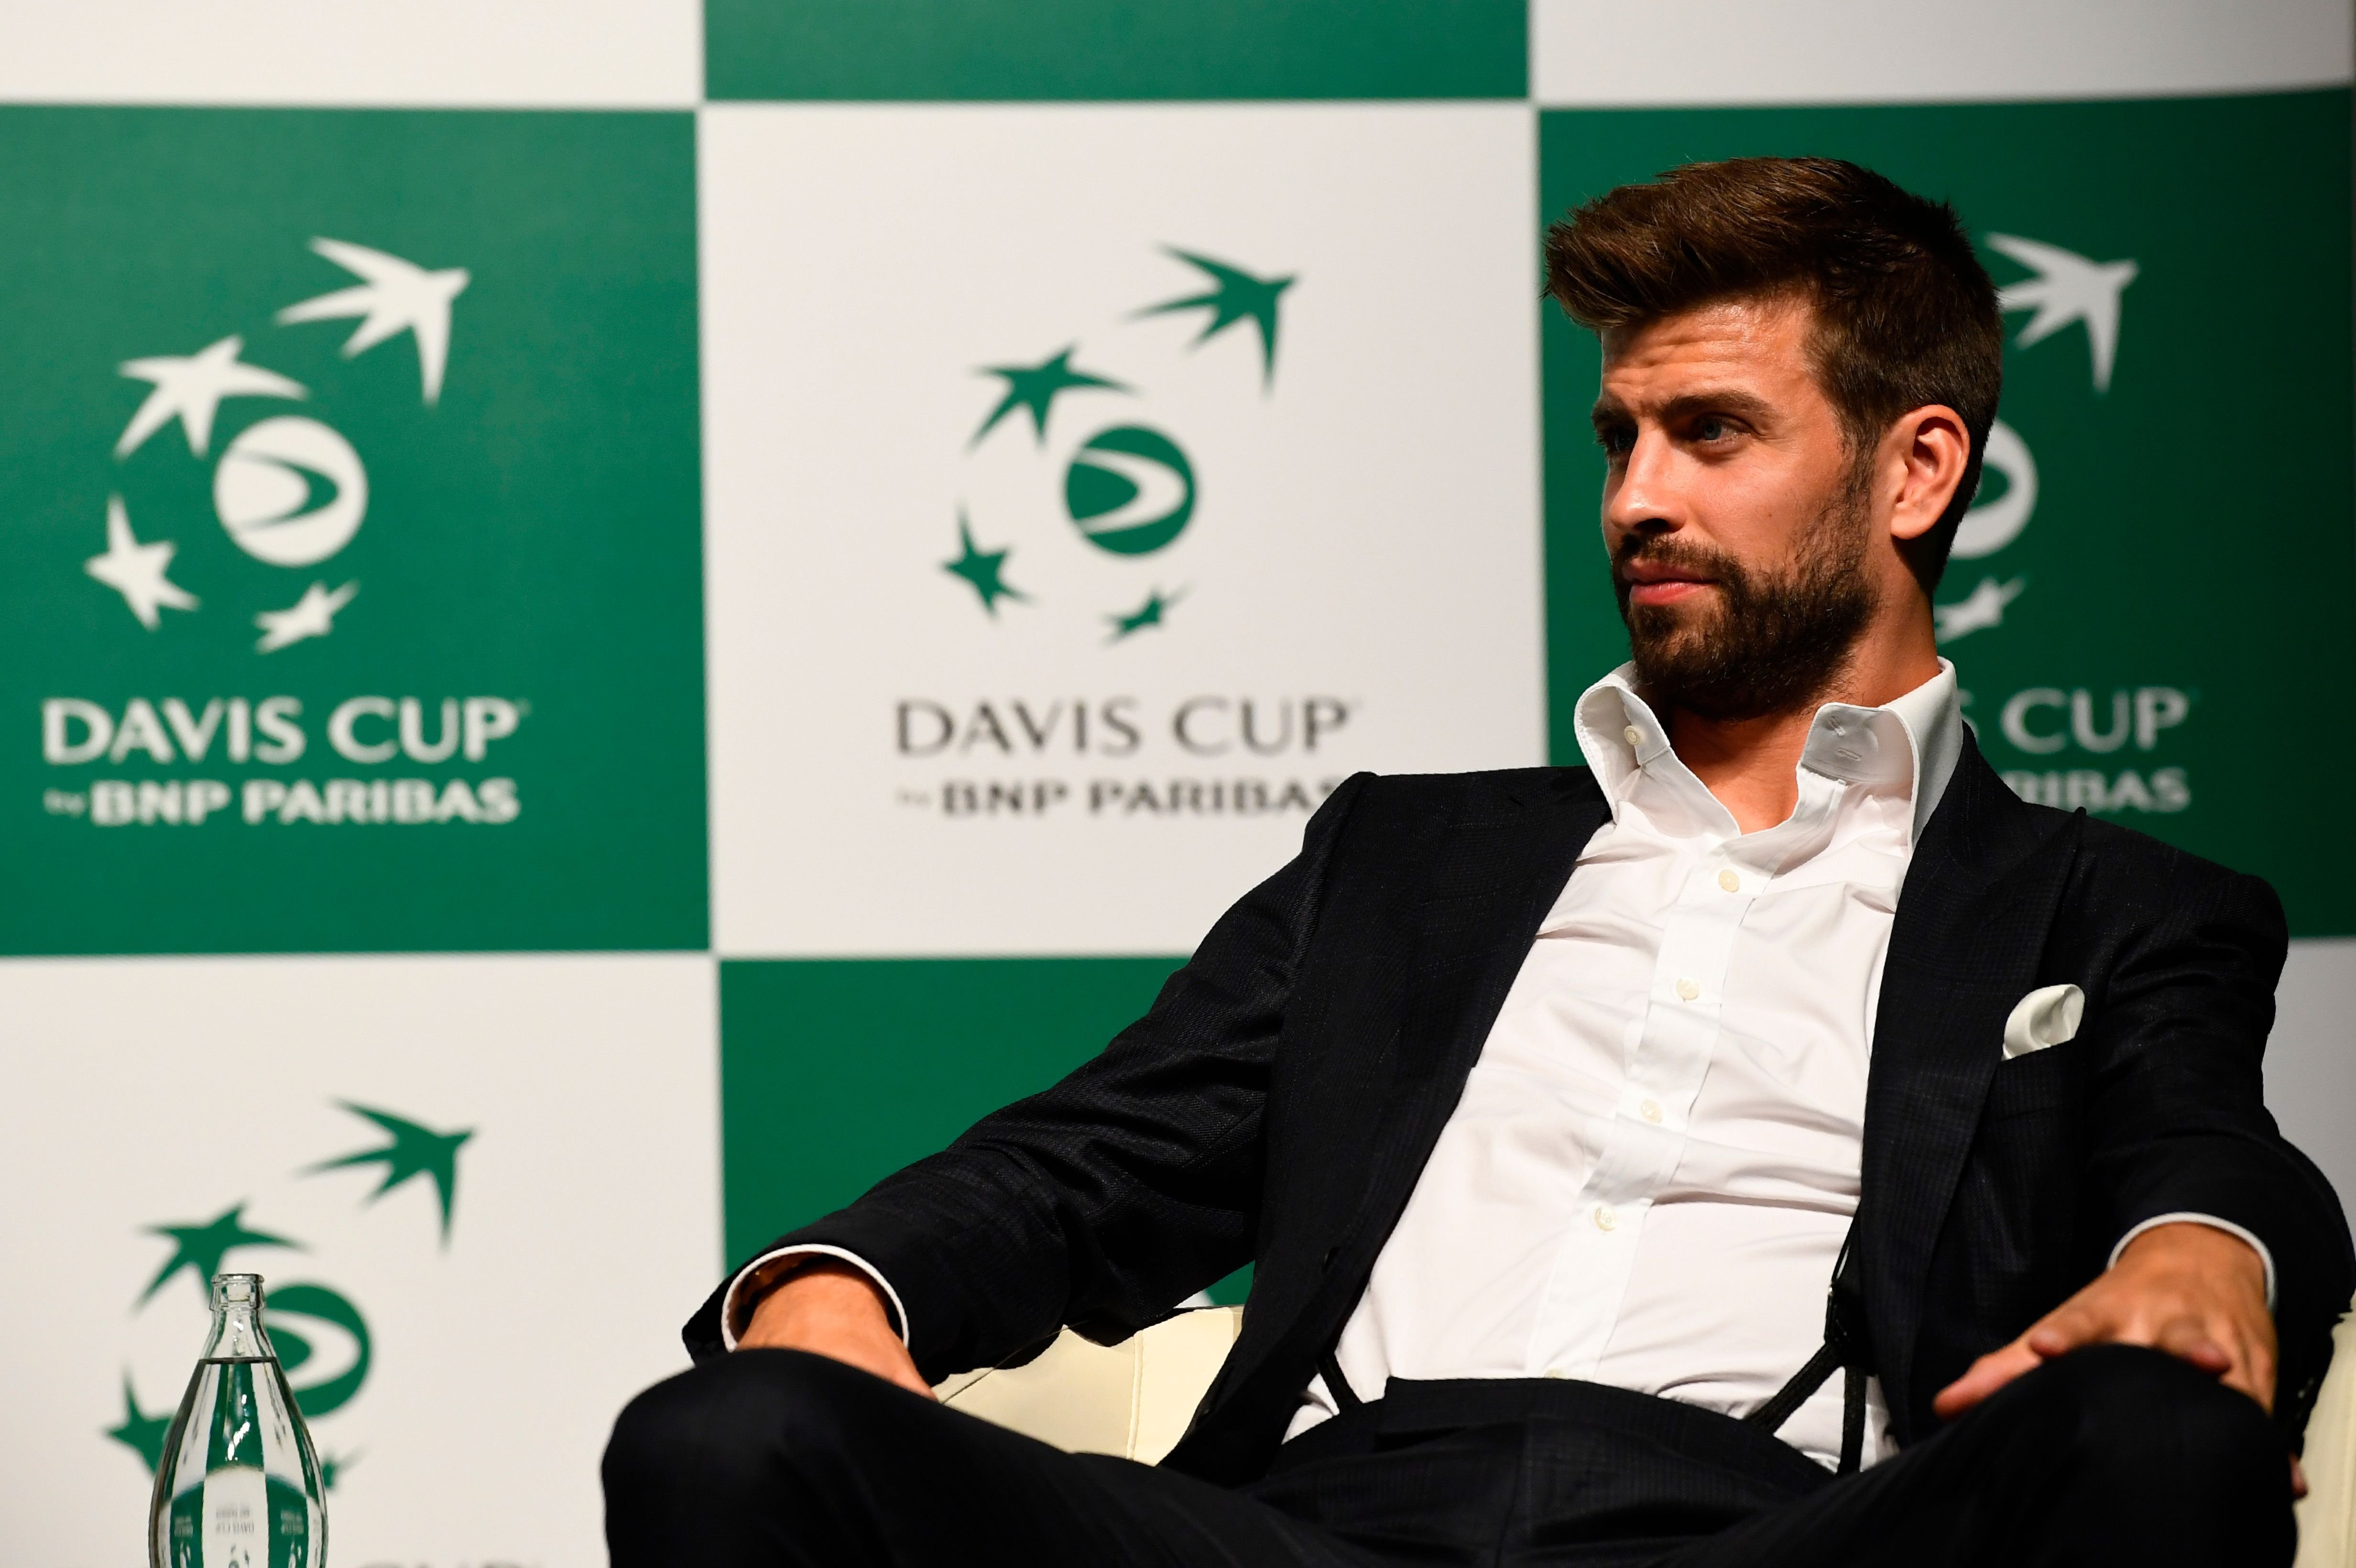 Gerard Pique hopes to avoid own goal in $3 billion Davis Cup revamp